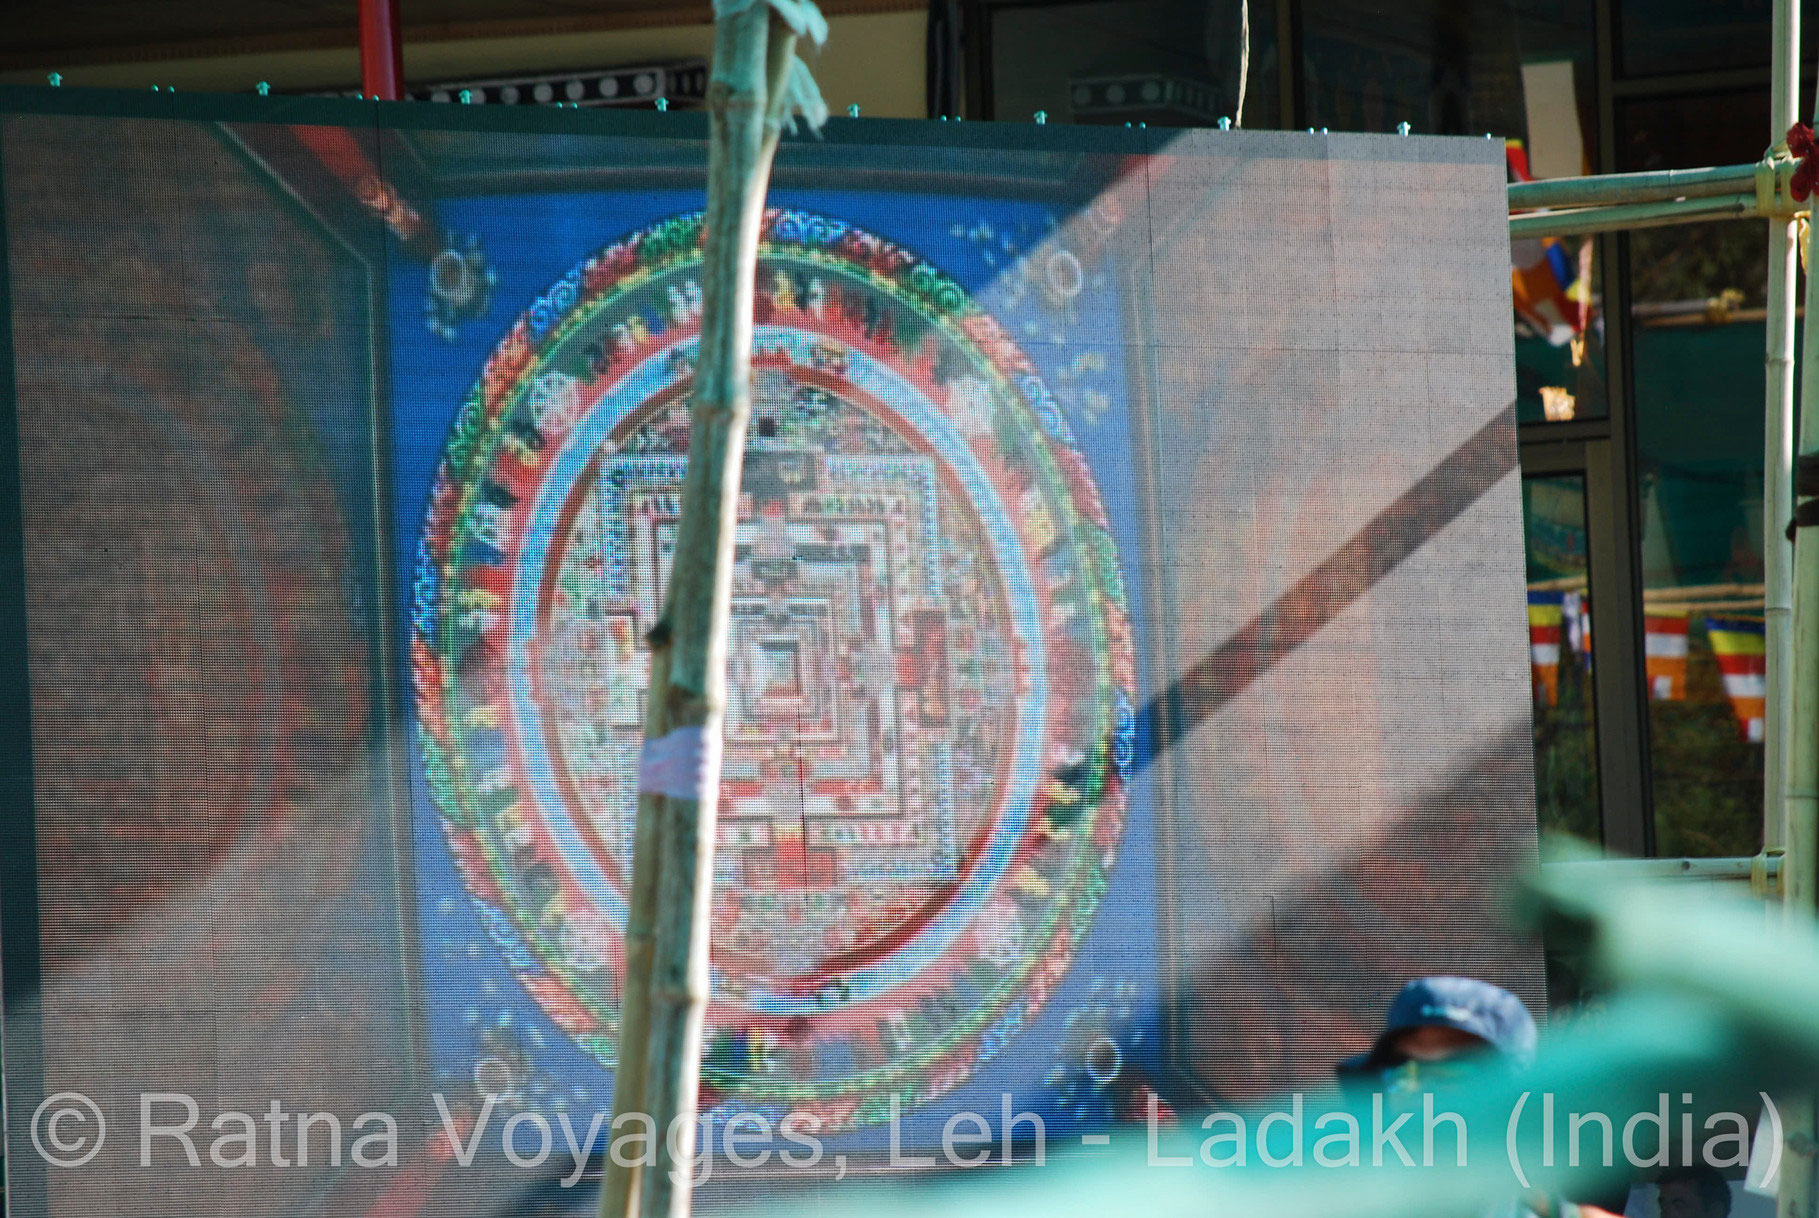 OUR PHOTO GALLERY FROM THE 33rd KALACHAKRA INITIATION